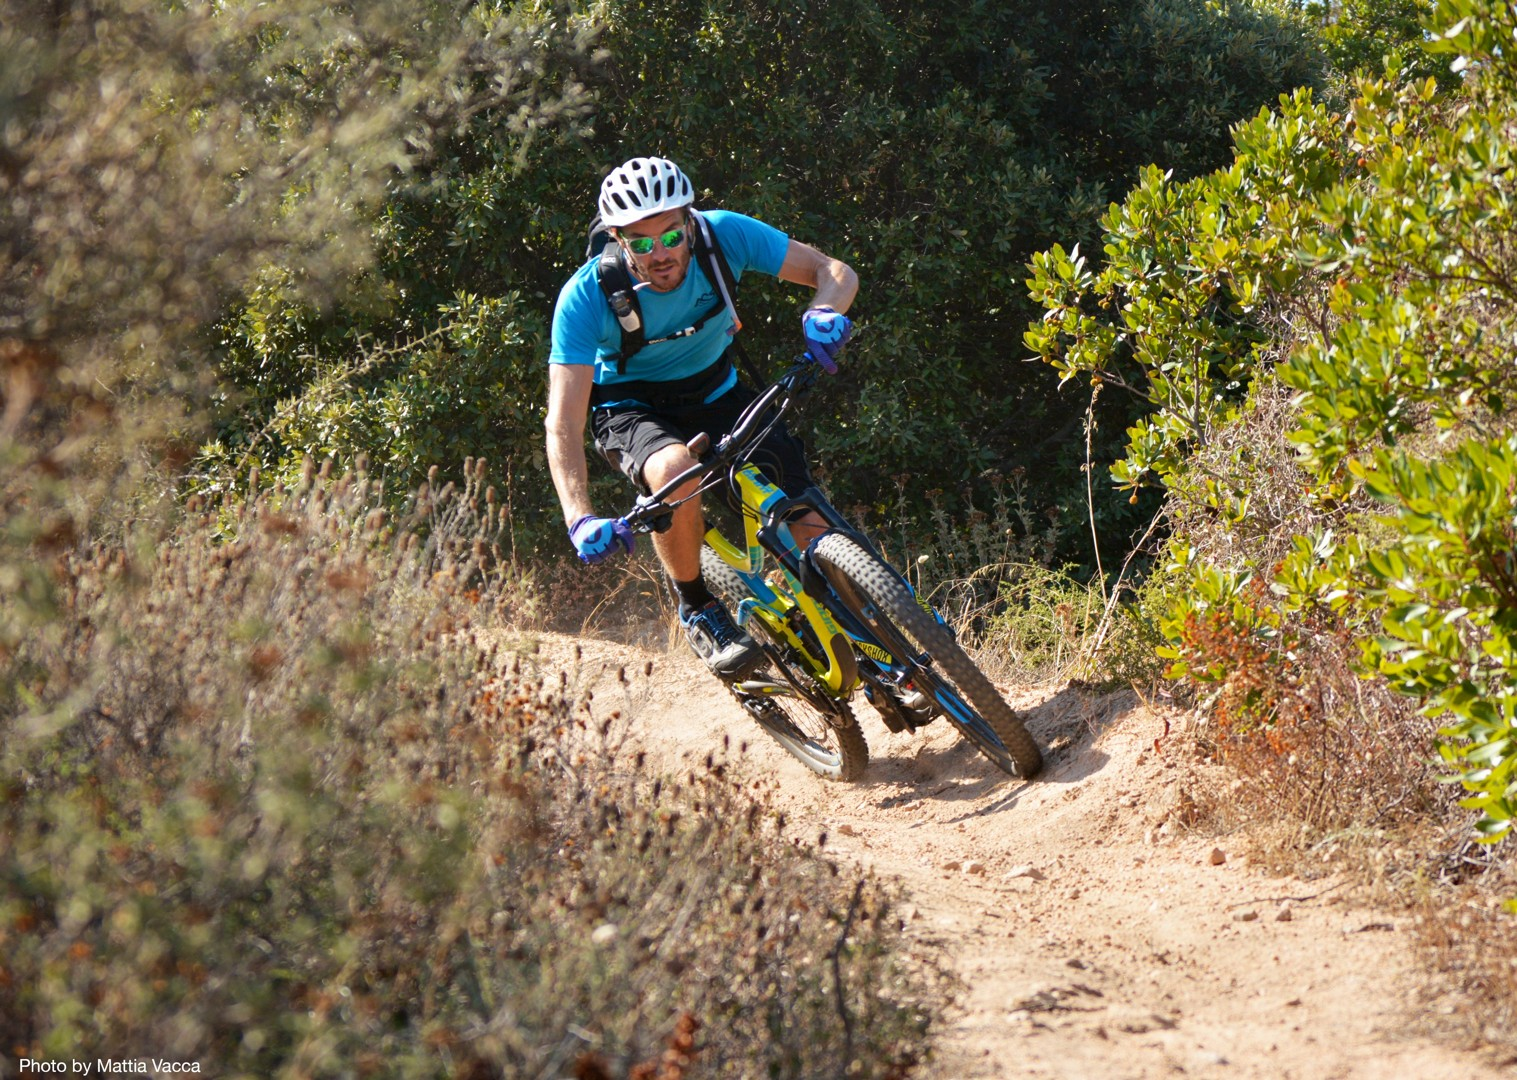 sardinian-enduro-italy-guided-mountain-bike-holiday.jpg - Sardinia - Sardinian Enduro - Guided Mountain Bike Holiday - Mountain Biking